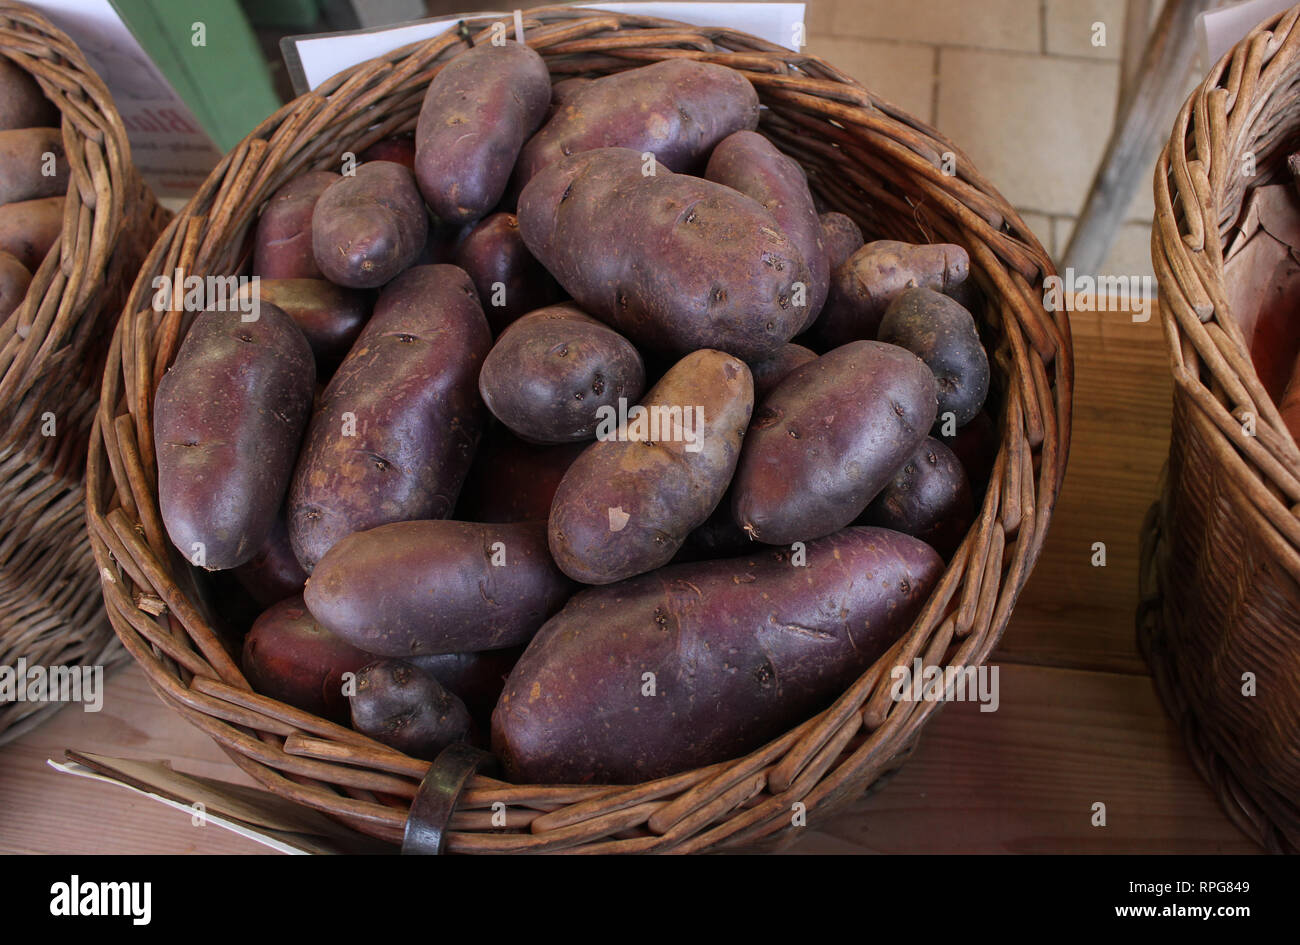 Vitelotte  potato, french blue colored potato species. Presented on a food market for fine food. - Stock Image